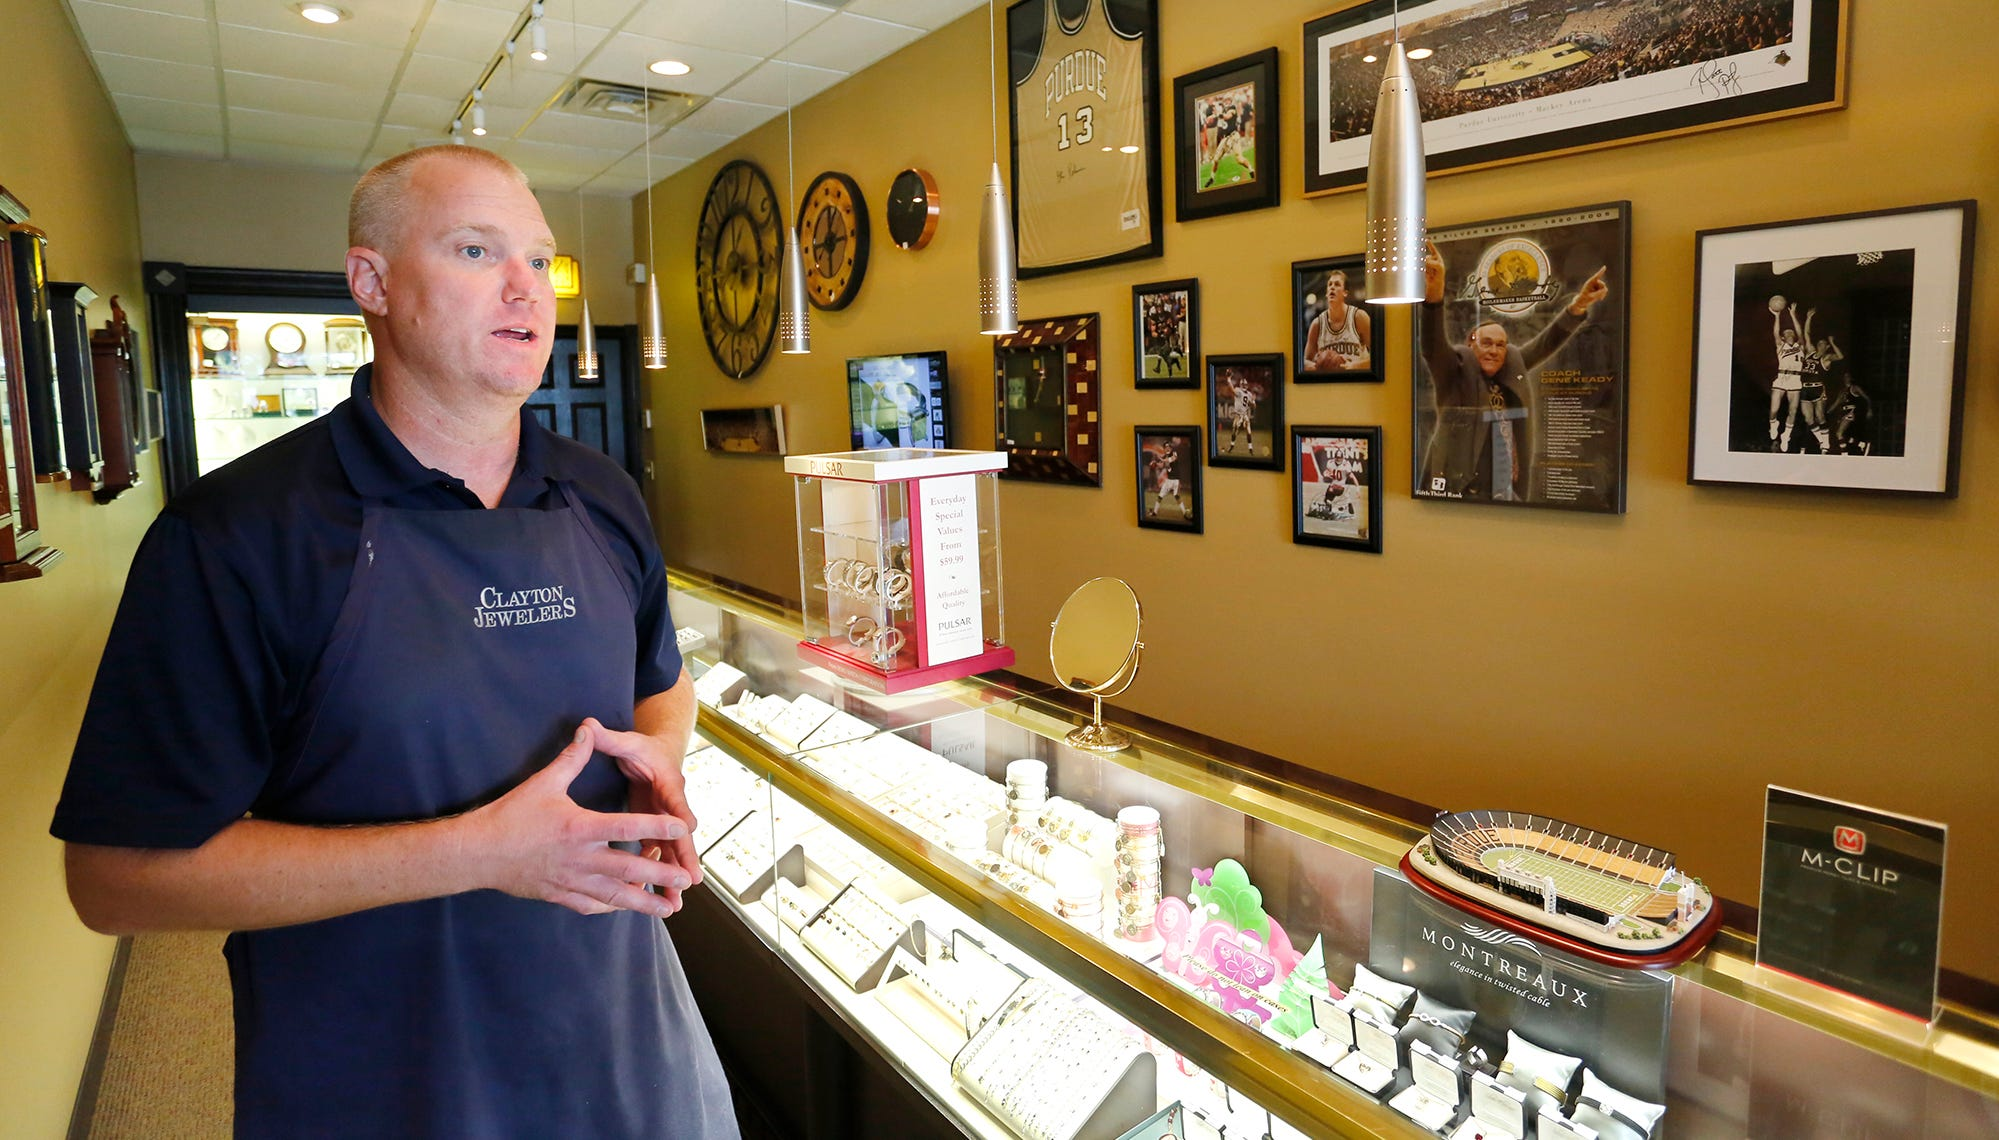 City awards $105K in grants to Lafayette businesses